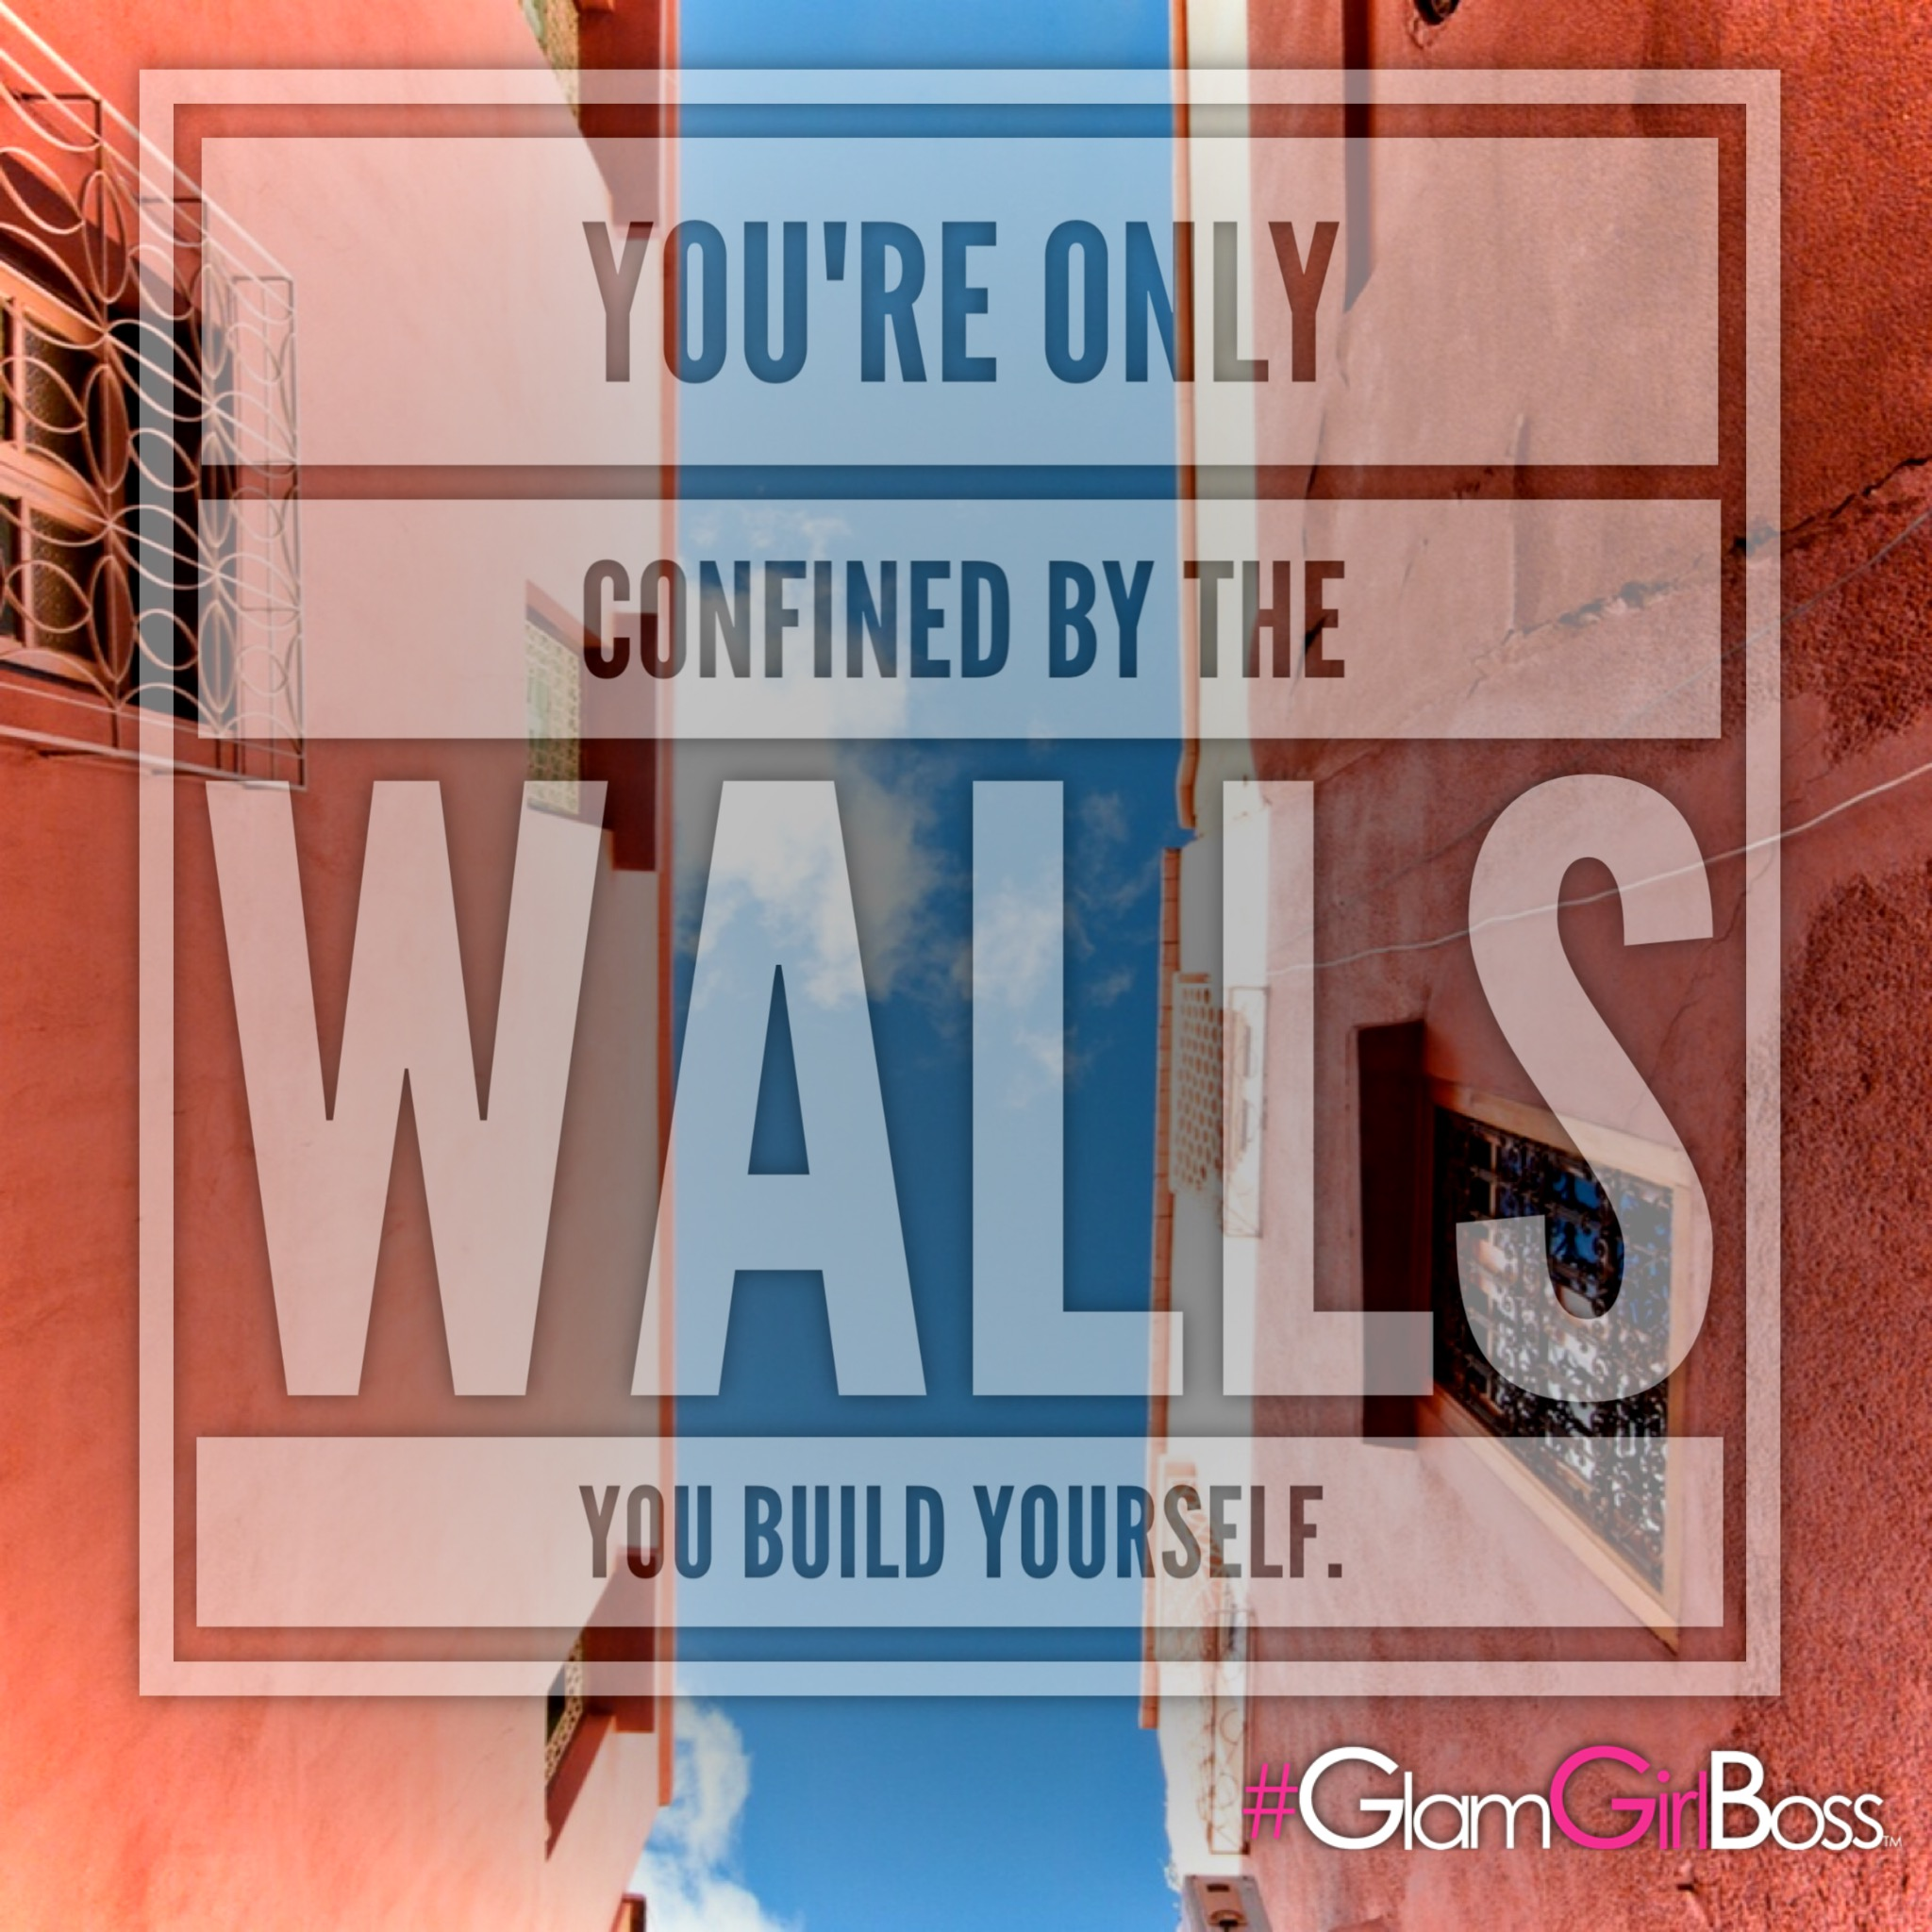 Confined by your own walls?